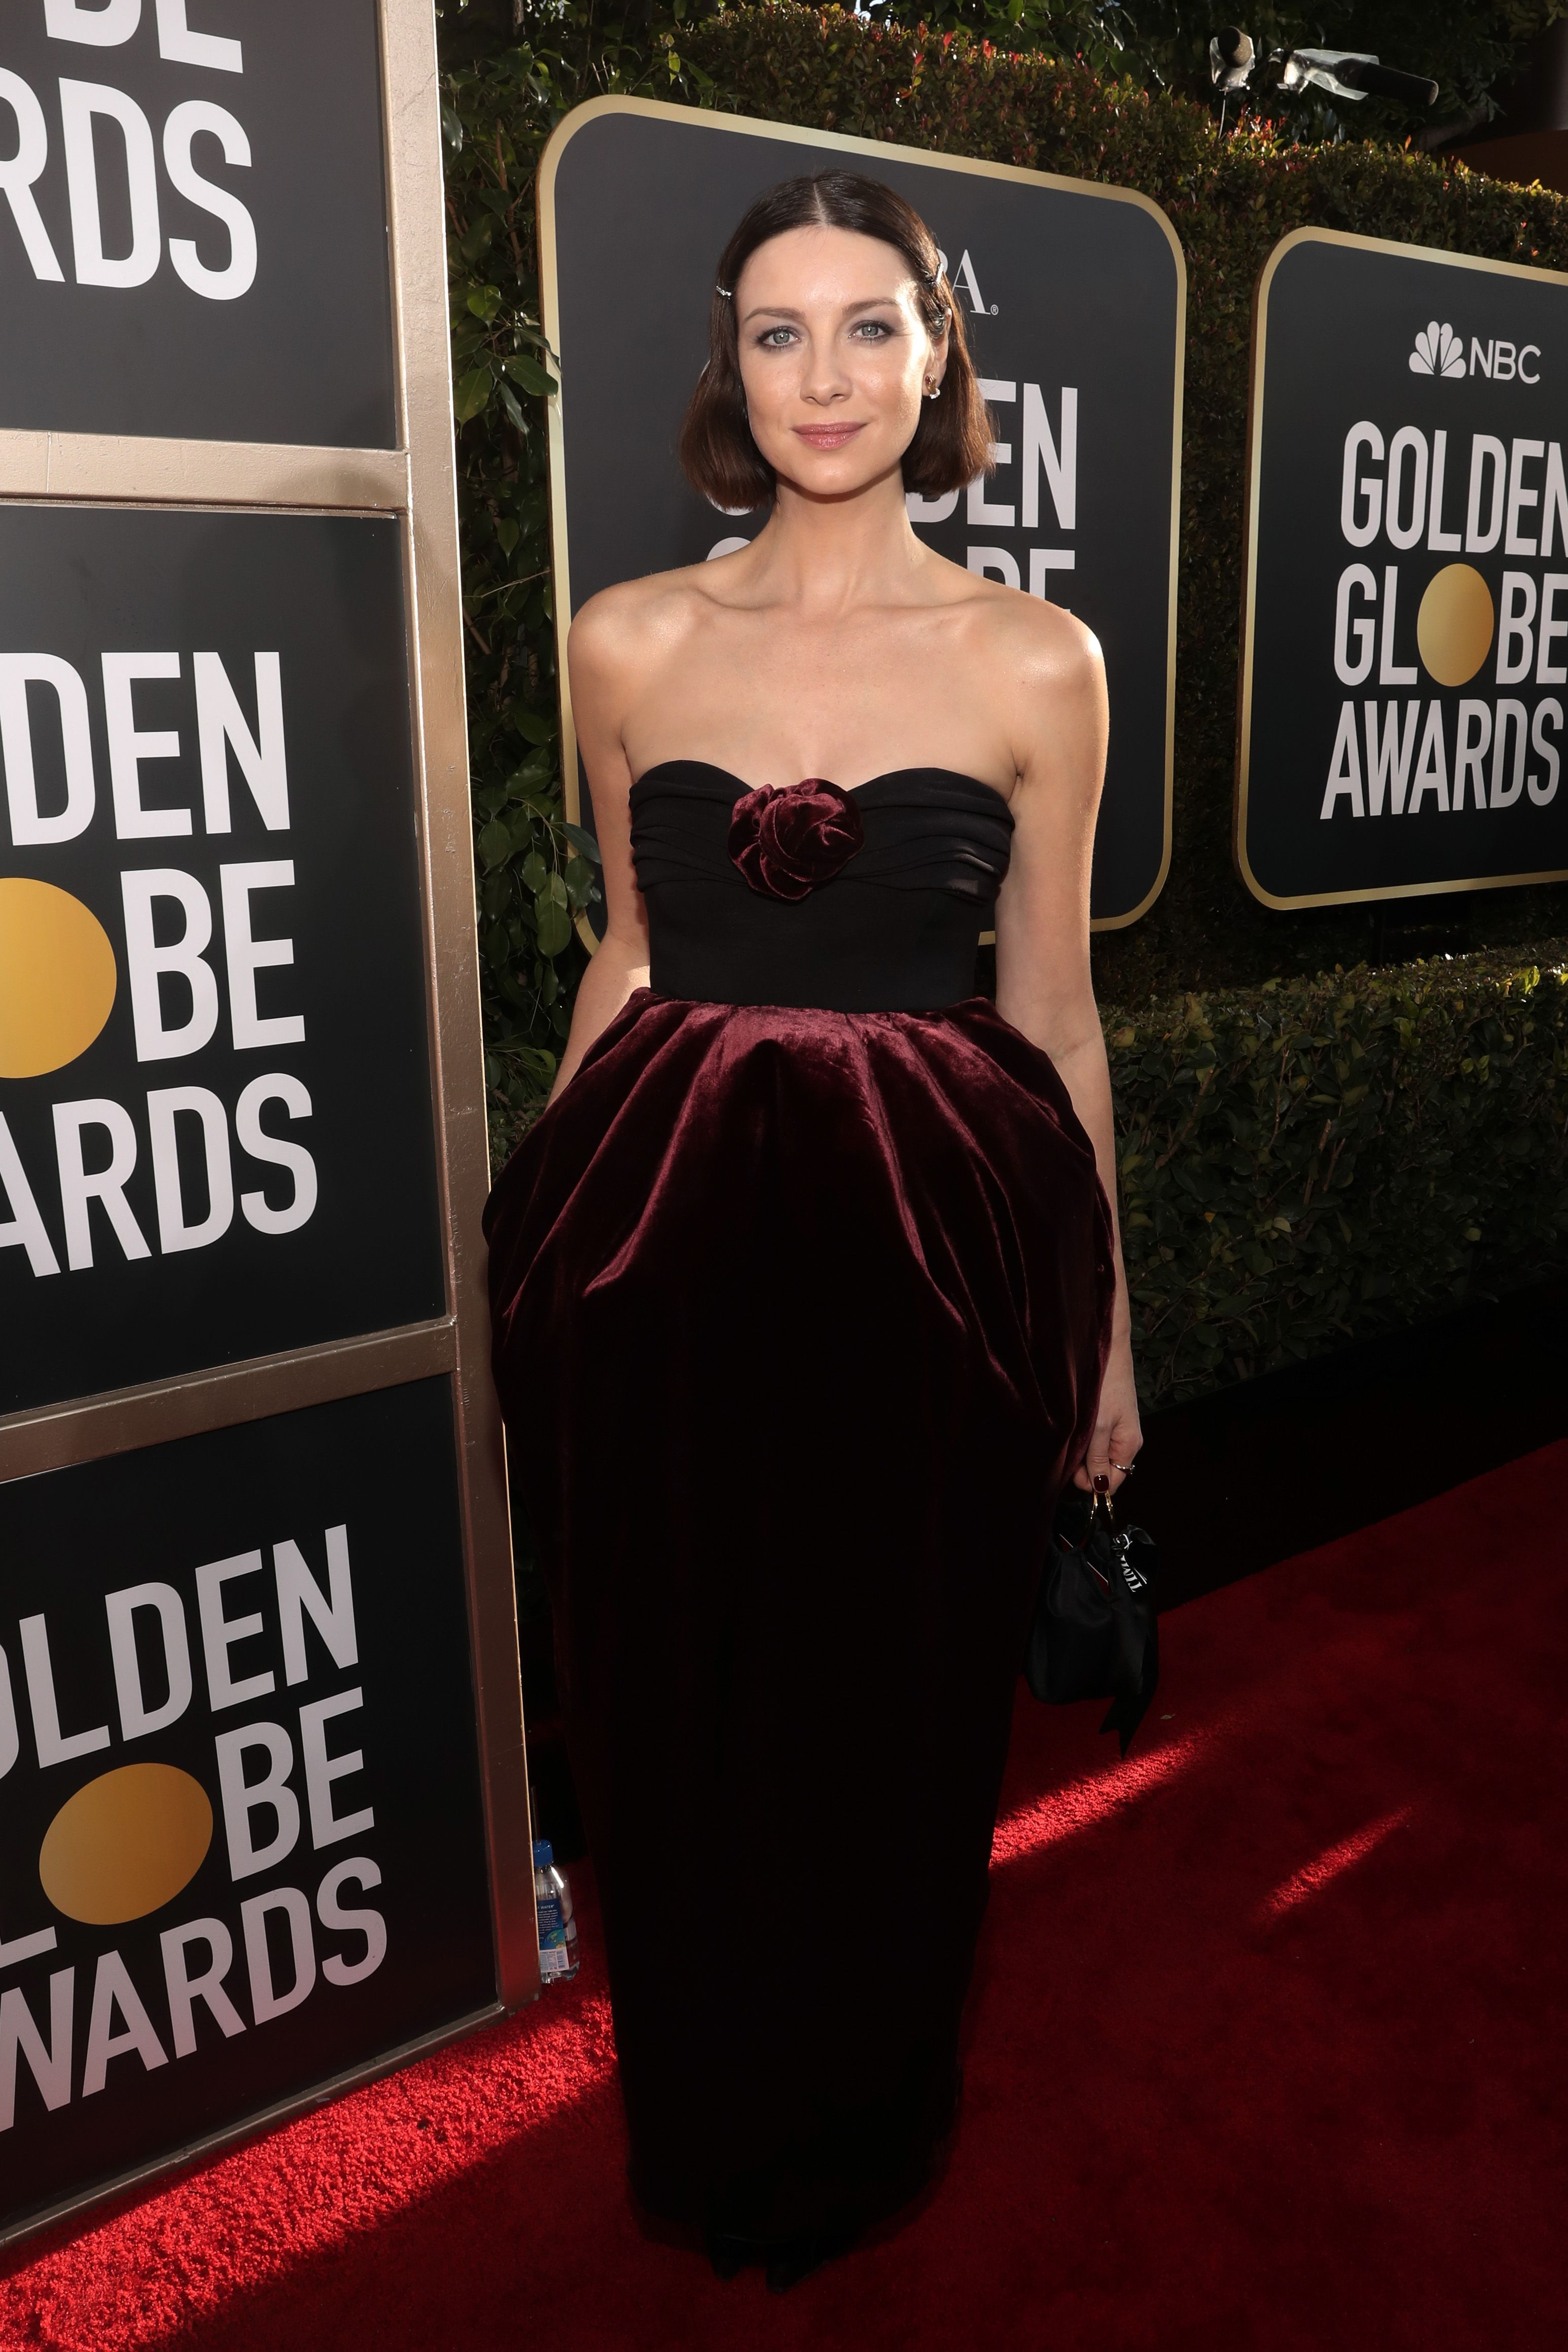 Outlander S Caitriona Balfe Dress At The 2019 Golden Globes Photos Of On Red Carpet